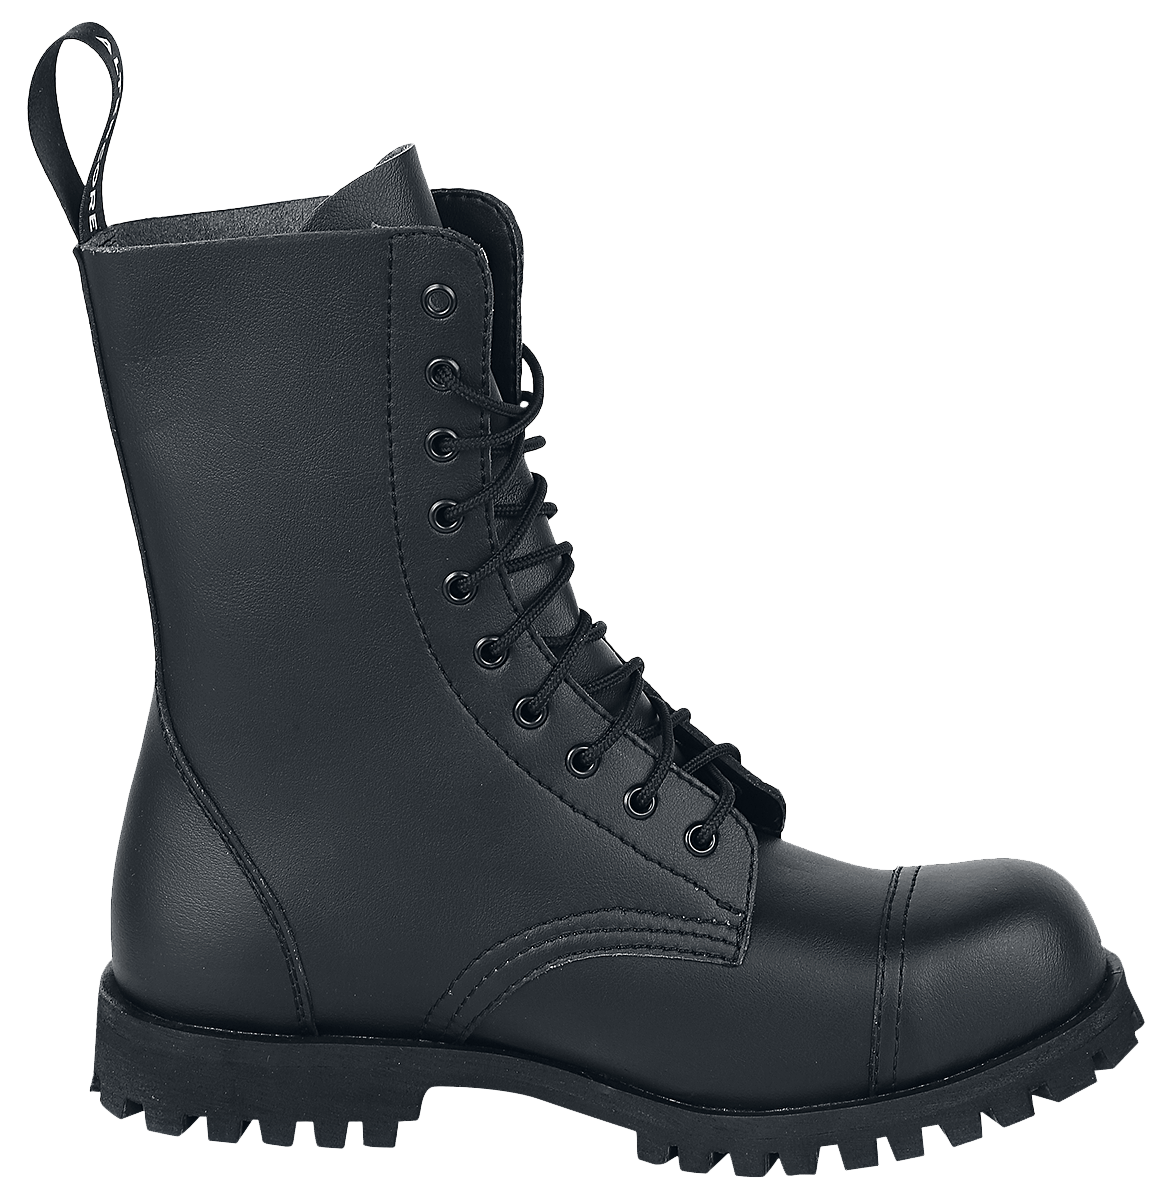 Image of Altercore 551 Vegan Stiefel schwarz